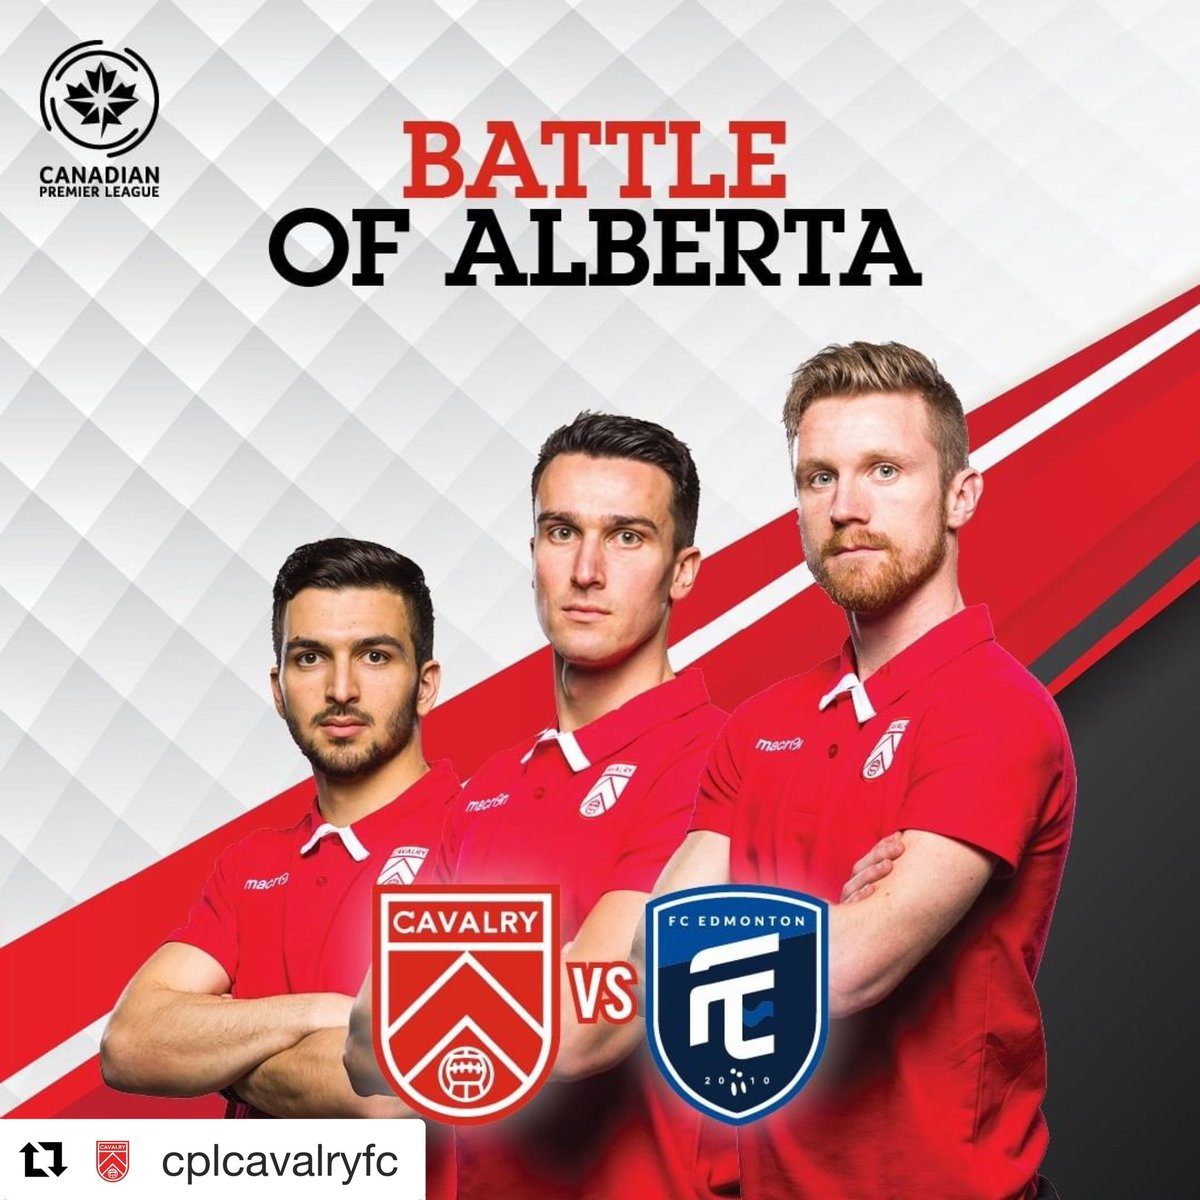 """BATTLE OF ALBERTA """"Al Classico"""" vs @fcedmontonnow  This Saturday, 4 p.m. at ATCO Field at @spruce_meadows ⚽🥅   Game day tickets available at  🎫:  https://bit.ly/2JGdX4K  #RideWithUs #CavsFC #CavalryFC #CPL #SpruceMeadows"""